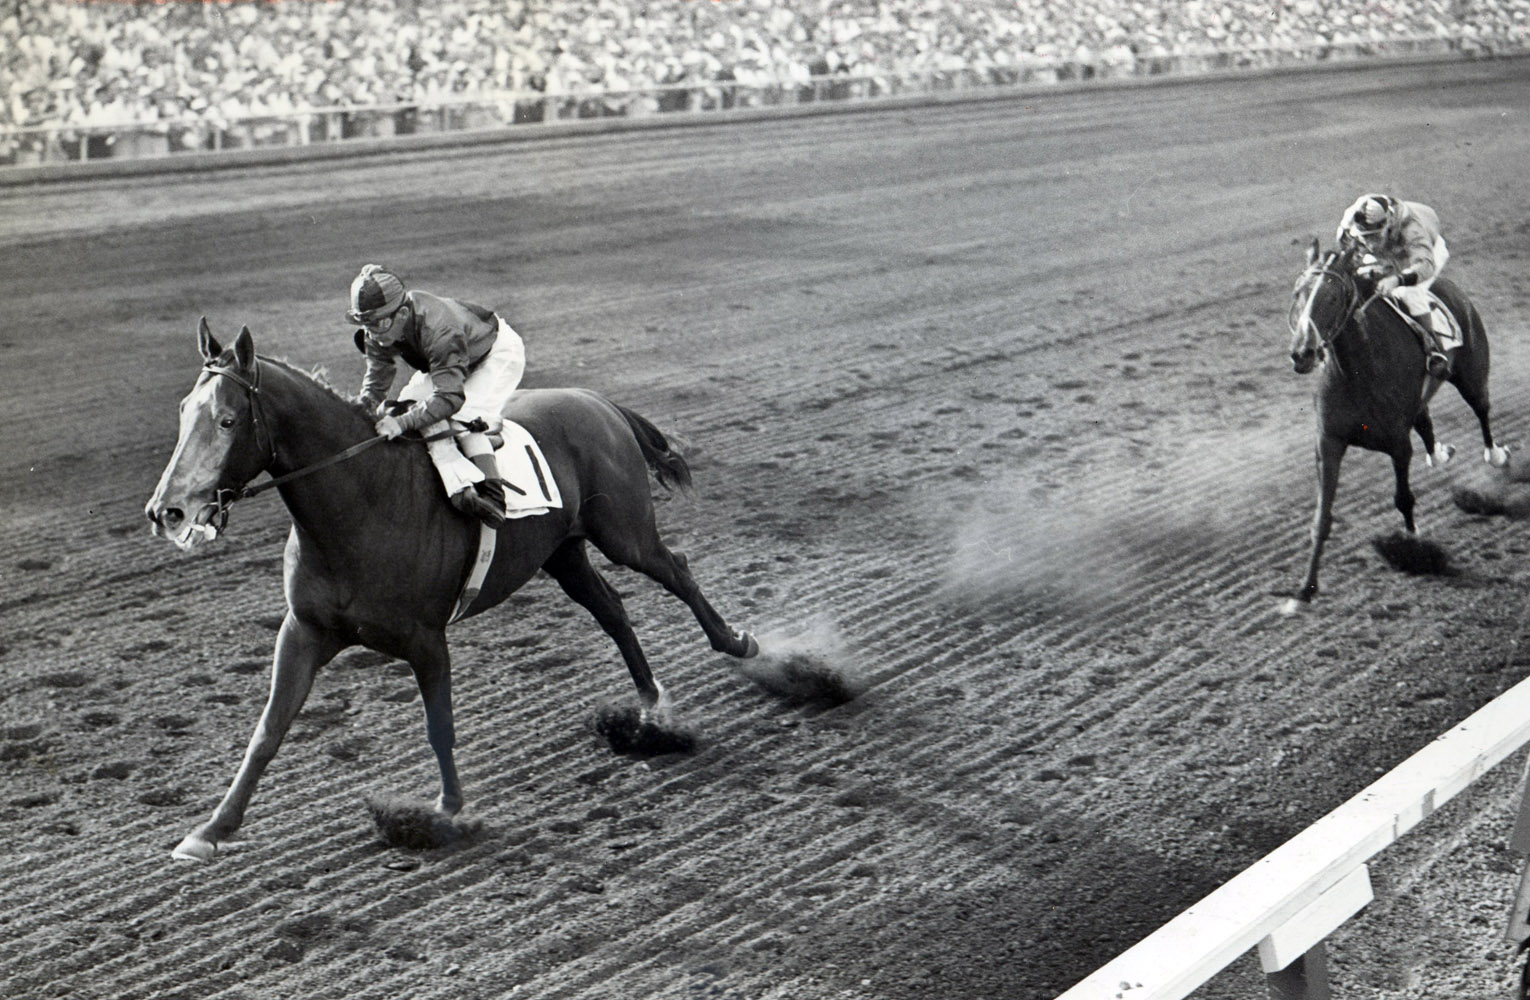 Swaps (Bill Shoemaker up) winning the 1956 Broward Handicap at Gulfstream Park (Museum Collection)